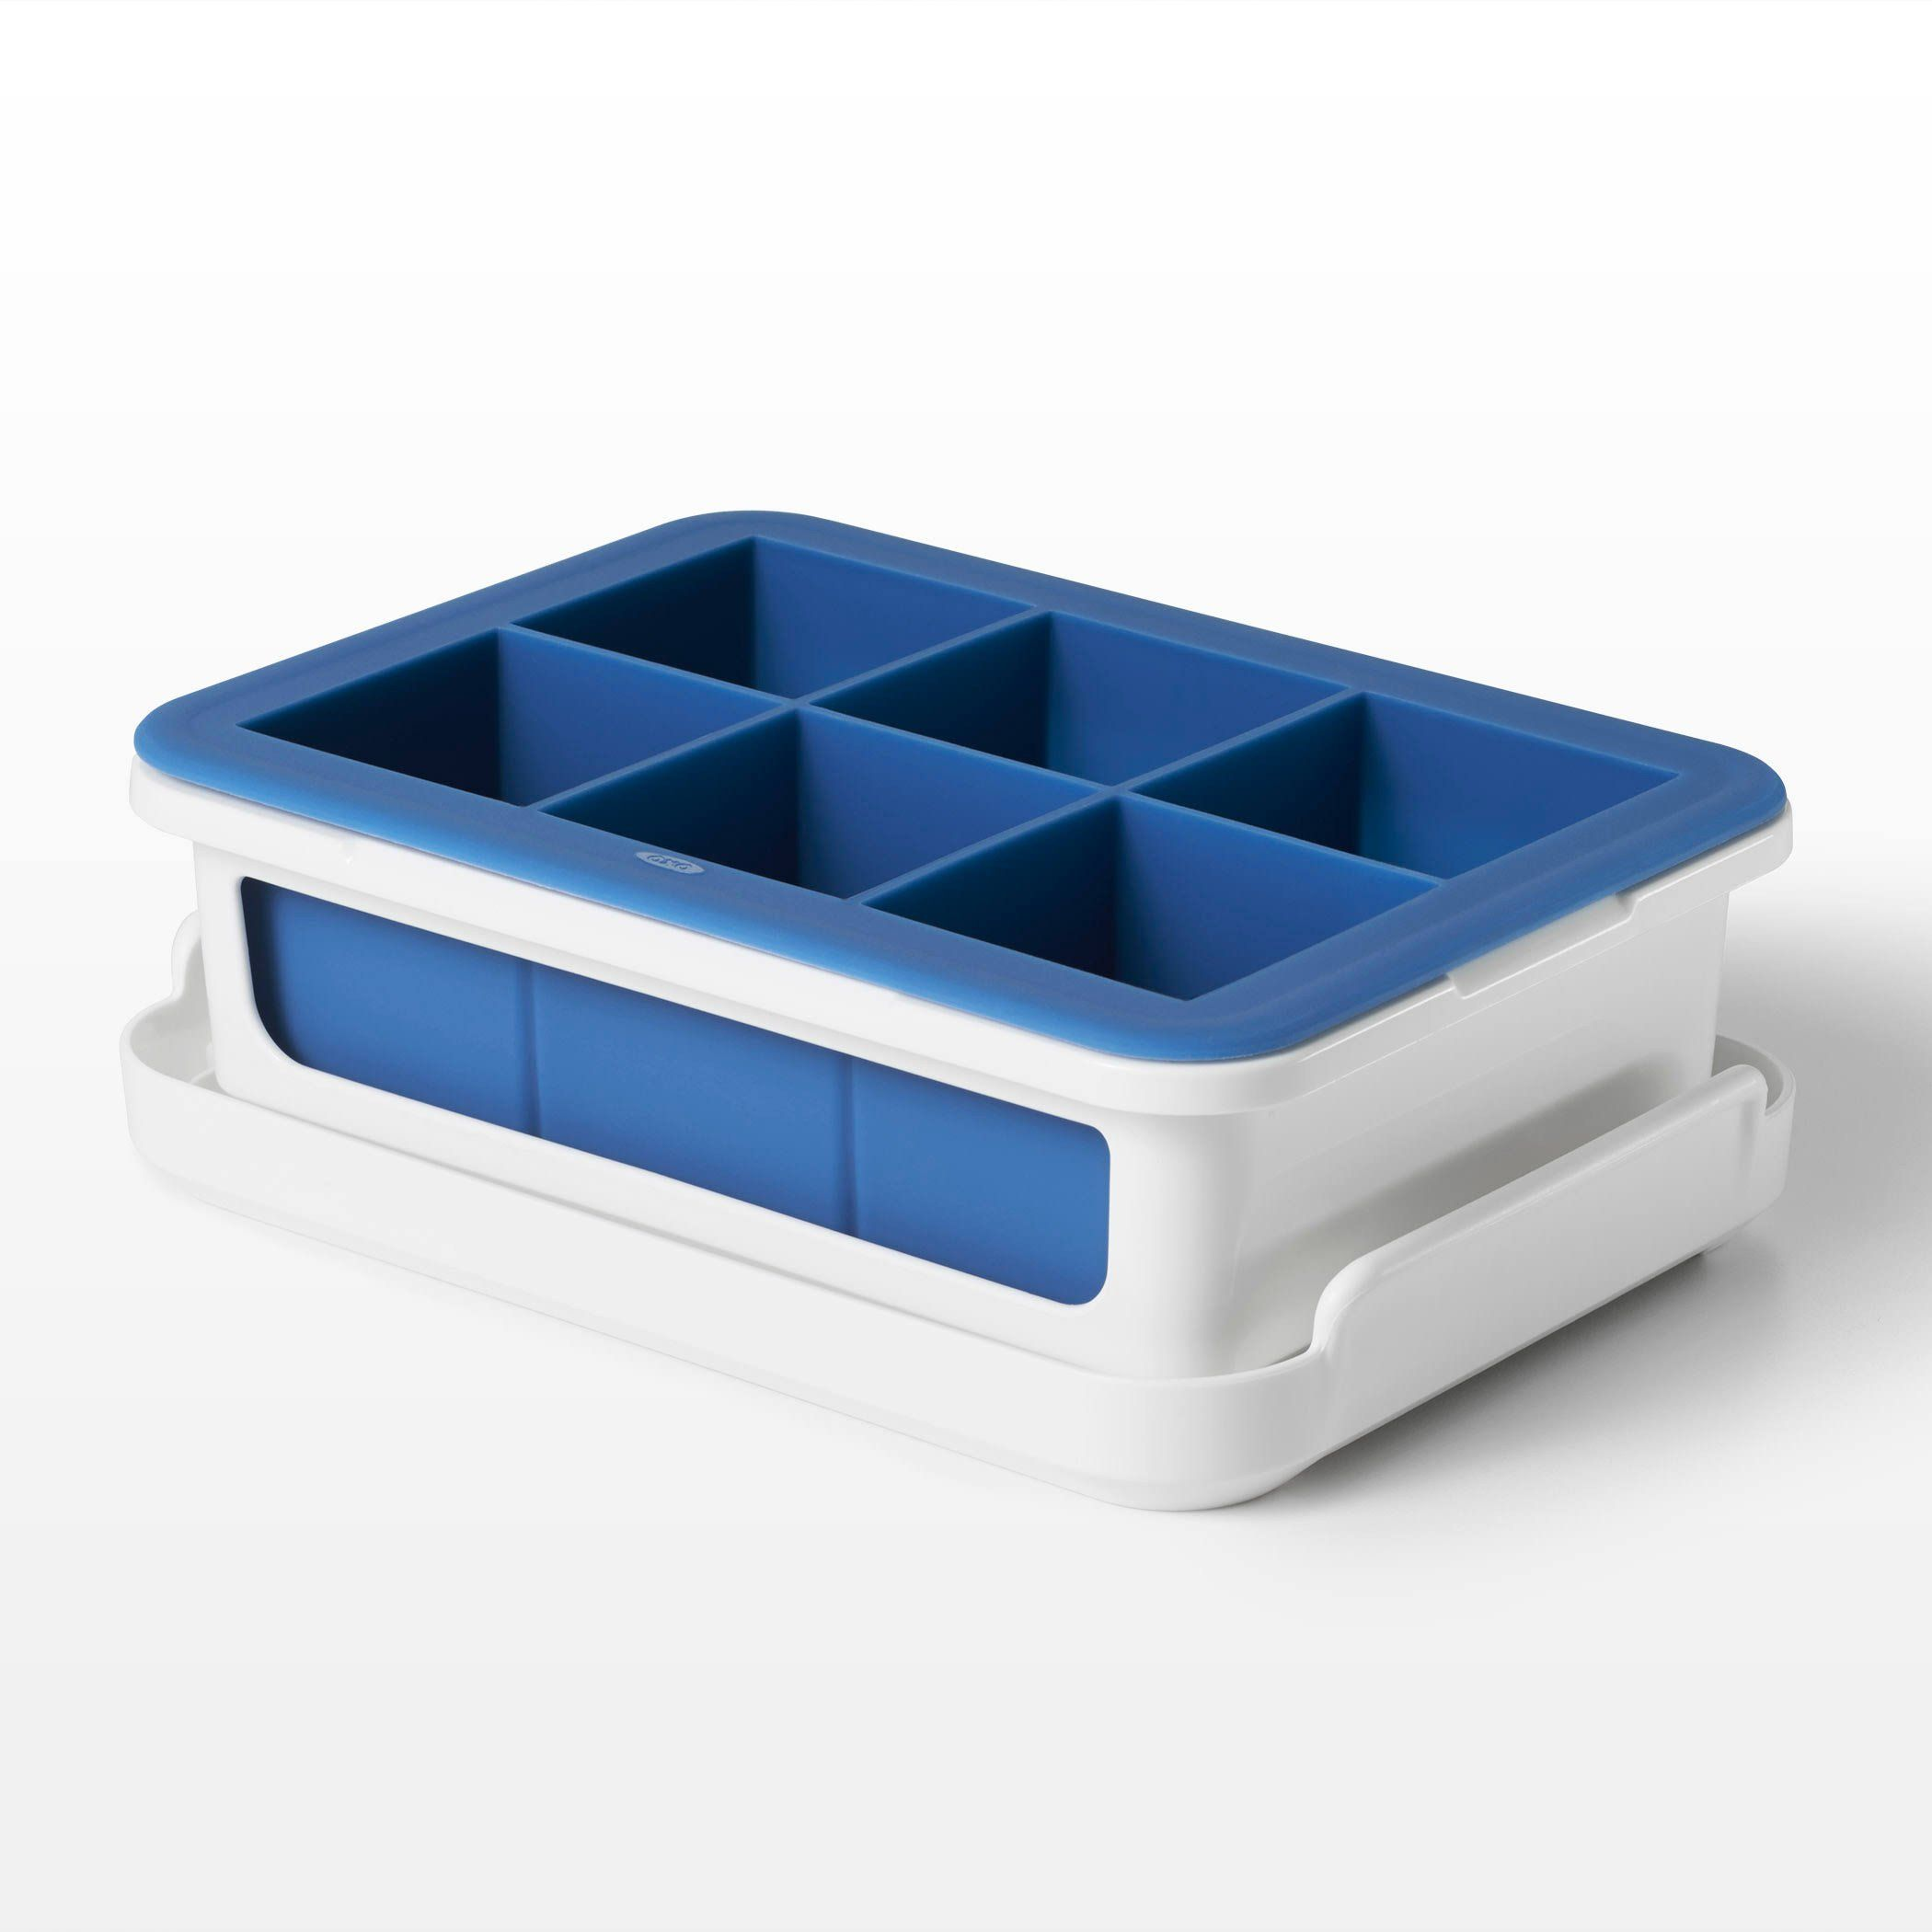 OXO Good Grips - Covered Silicone Ice Cube Tray